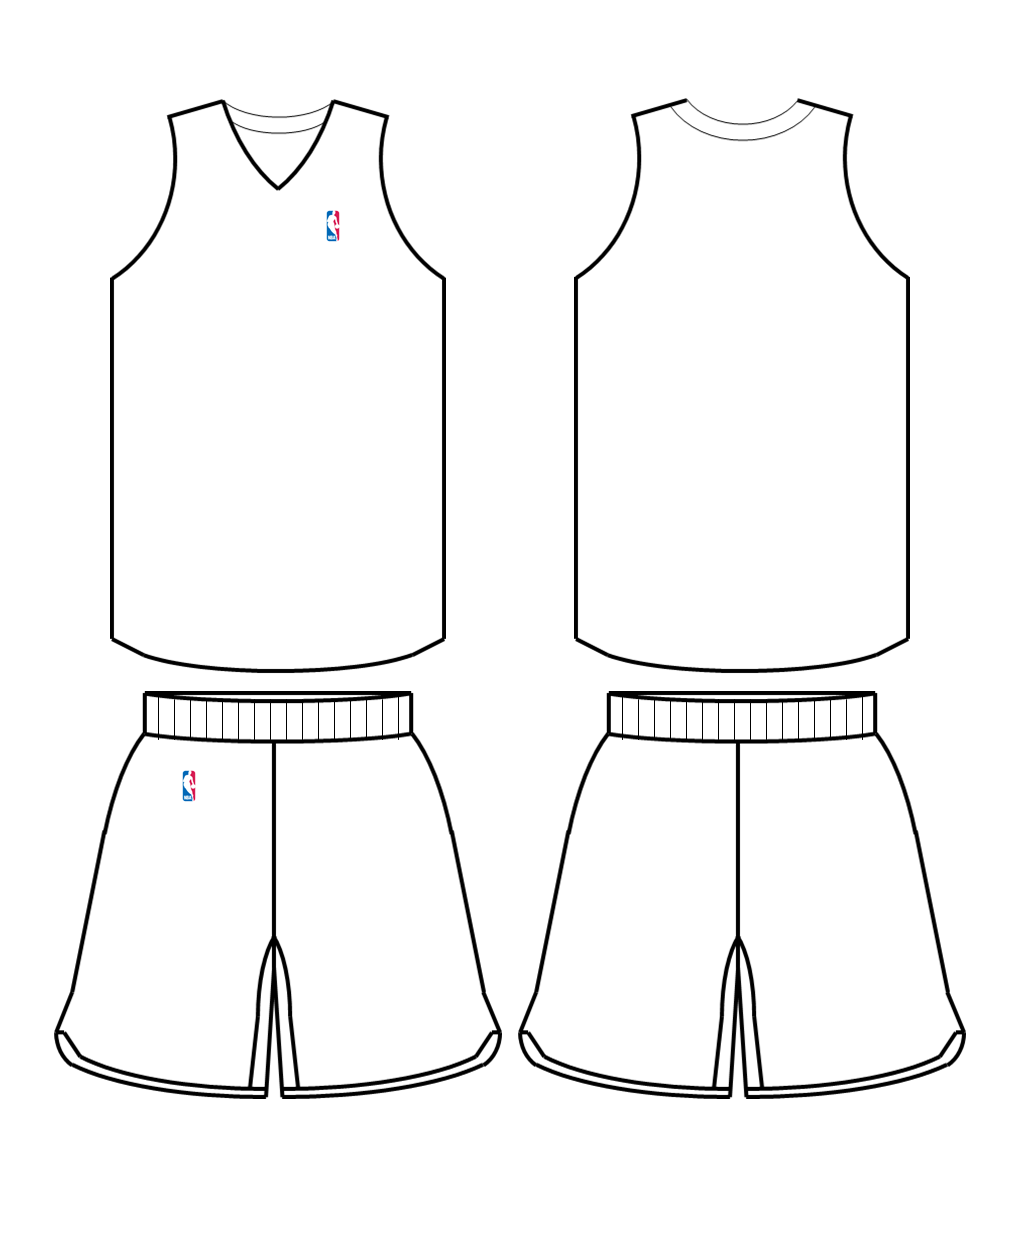 Communication on this topic: How to Wear Basketball Jerseys, how-to-wear-basketball-jerseys/